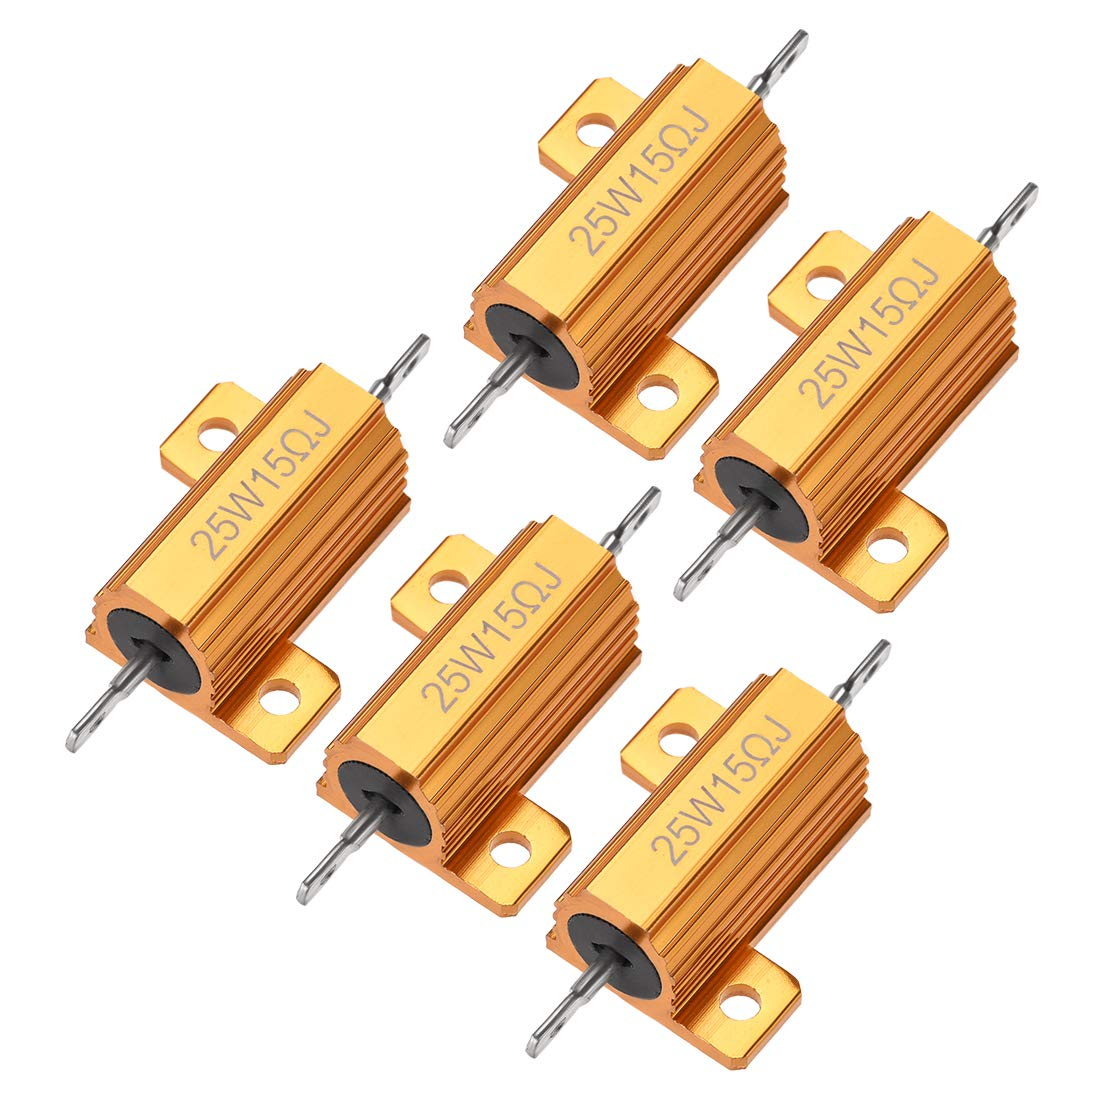 Cheap mail order specialty store uxcell 25W 15 Ohm 5% Aluminum Screw Tap Max 64% OFF Chassis Resistor Housing